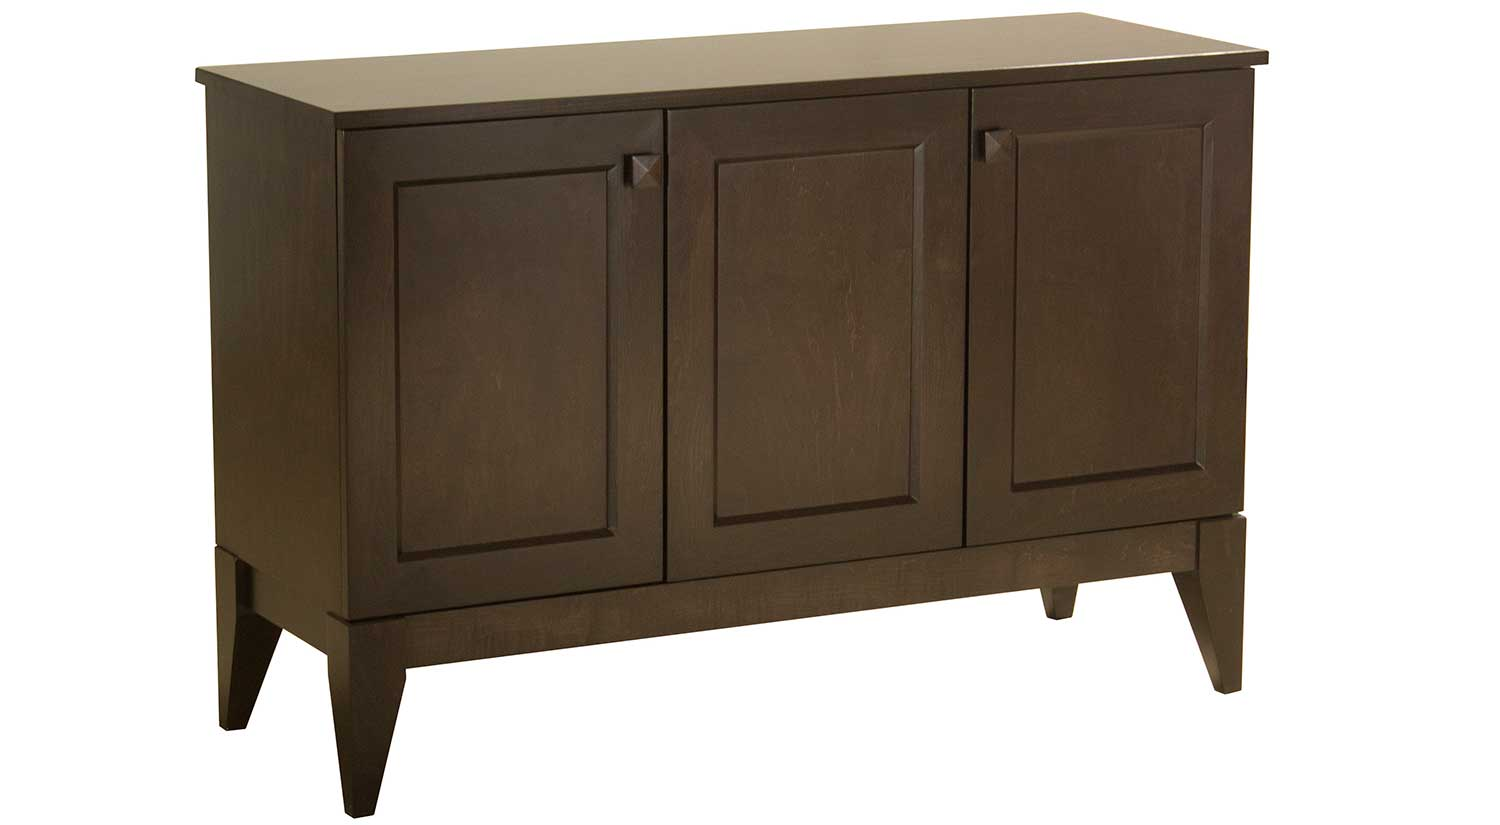 Dining buffets and cabinets dining buffets and cabinets watson buffet